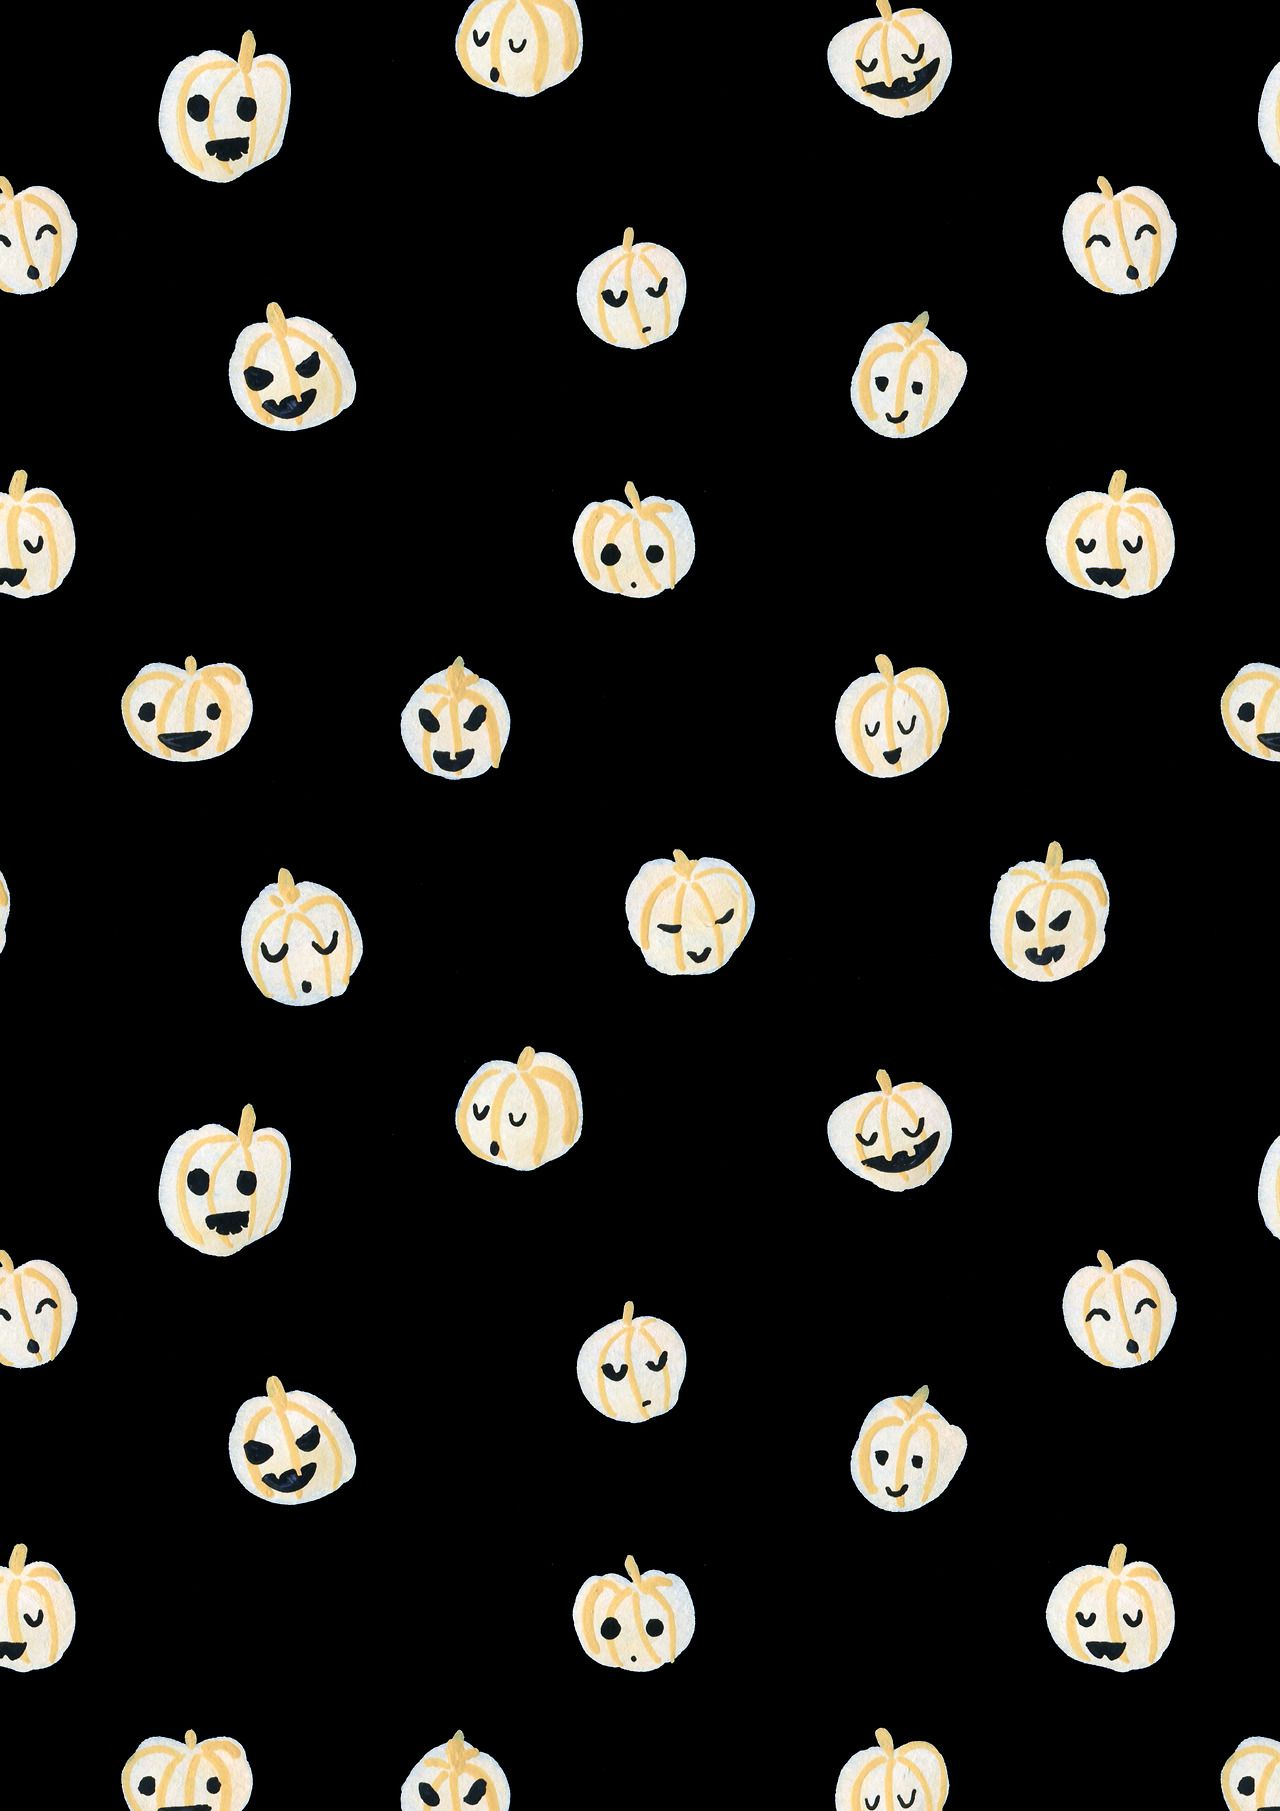 Autumn / Fall / Halloween cute pumpkin pattern design